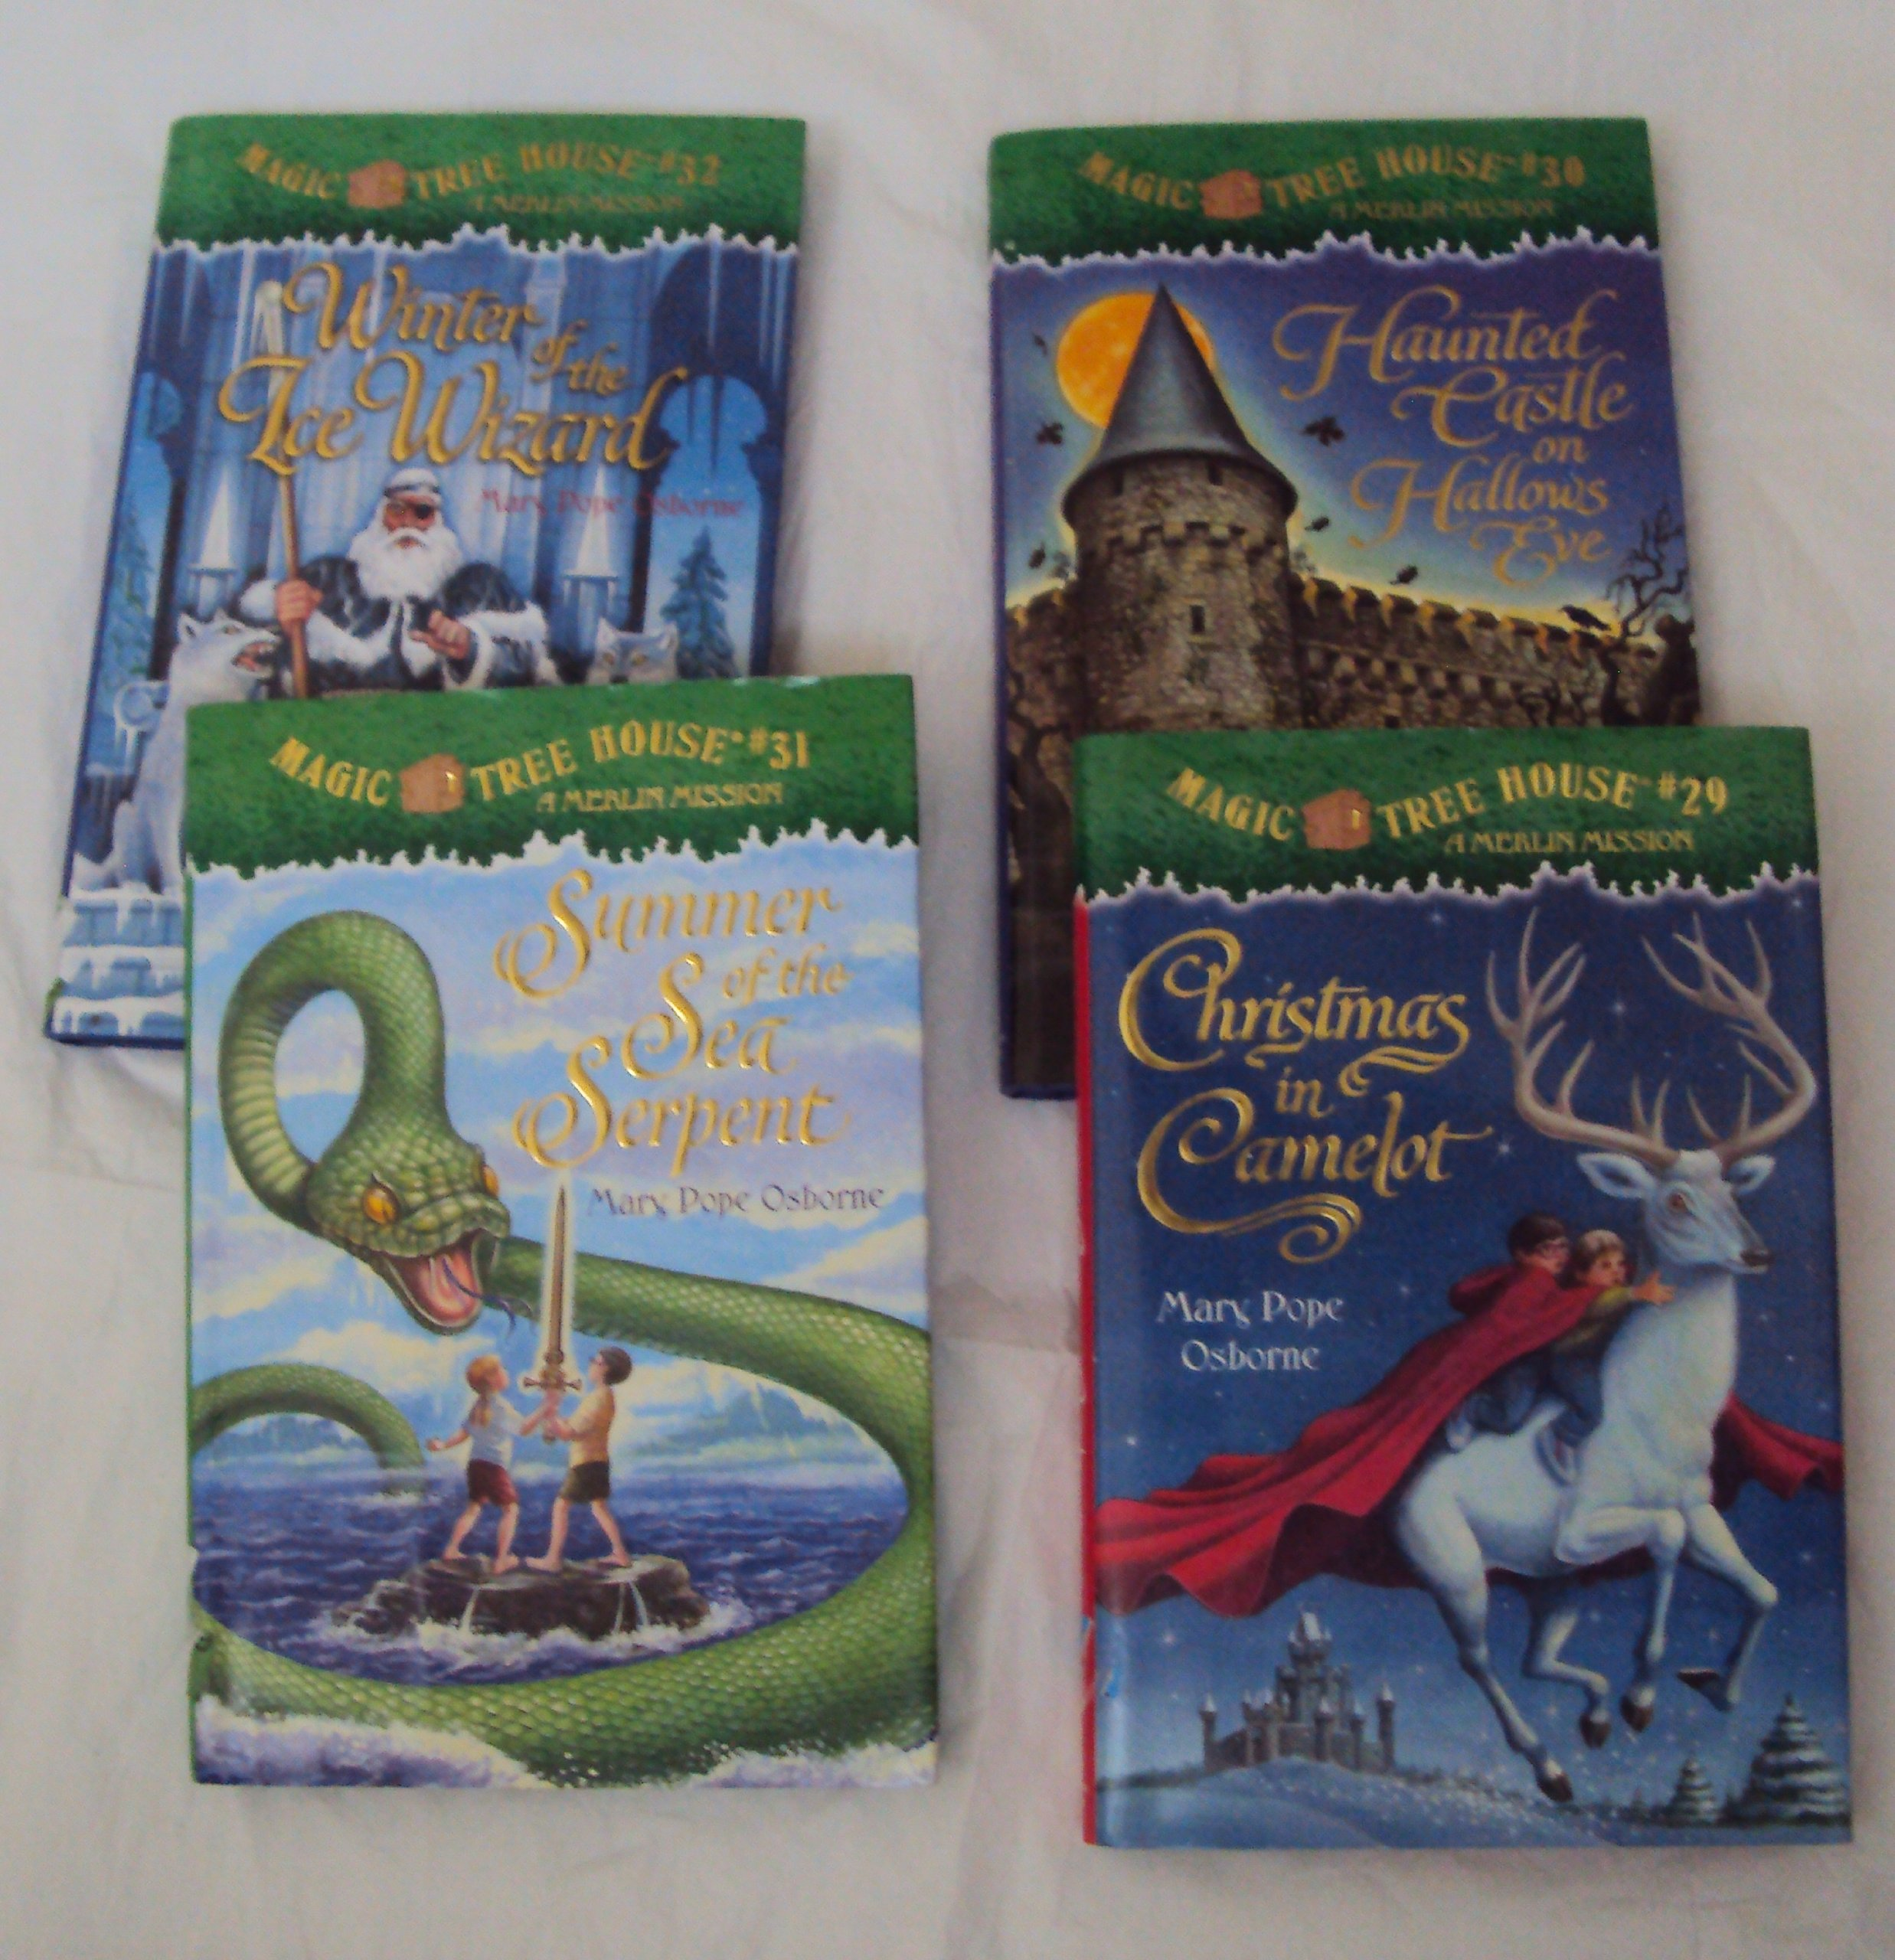 Magic Tree House #29  #32 : Summer Of The Sea Serpent, Christmas In  Camelot, Haunted Castle On Hallows Eve, Winter Of The Ice Wizard (book Sets  For Kids):